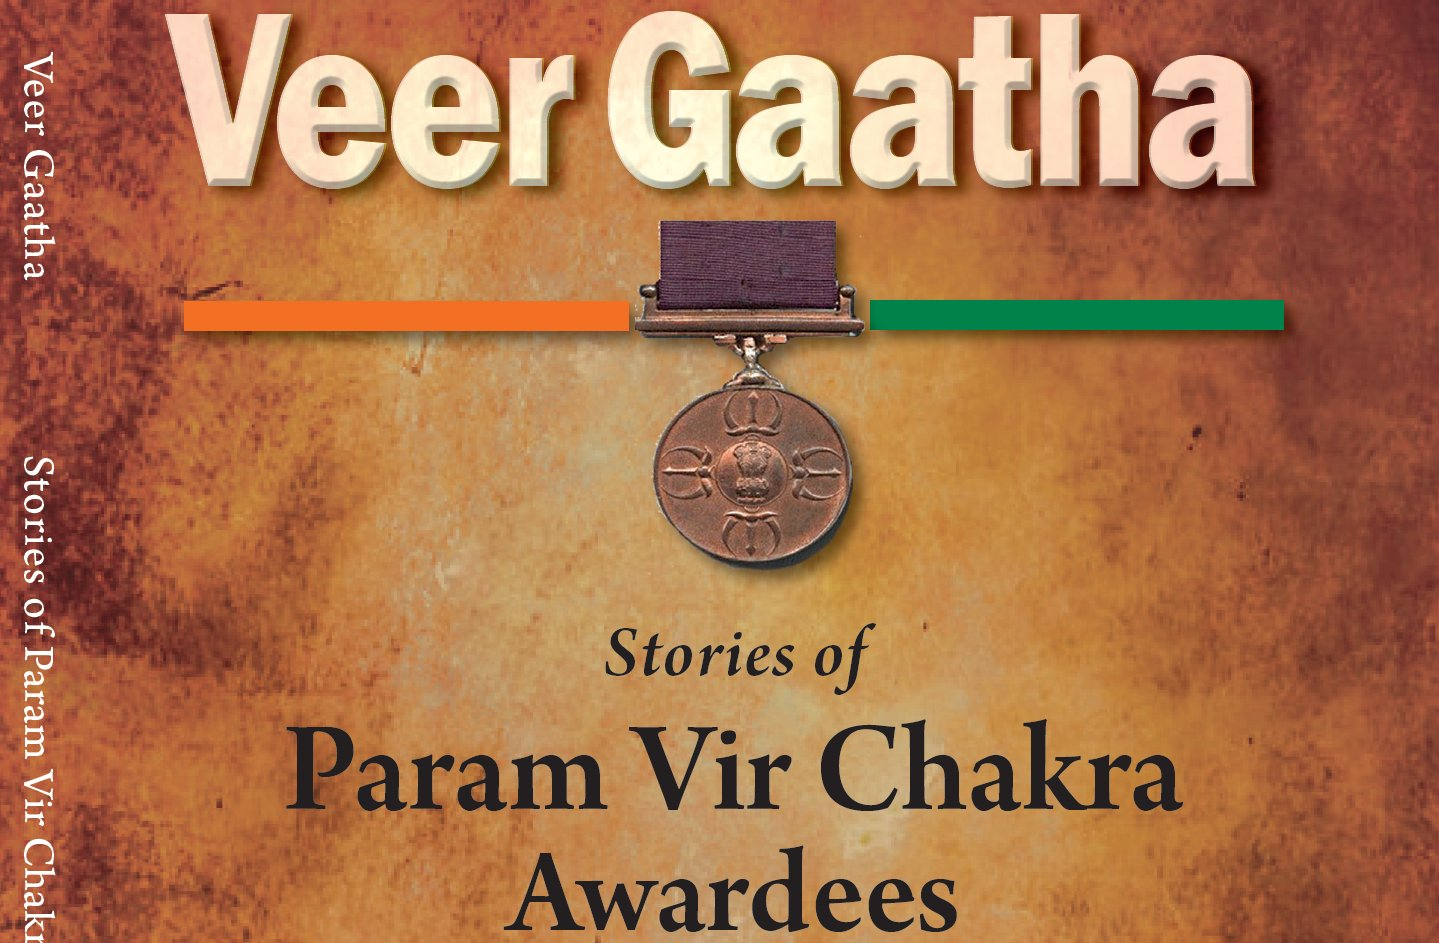 Param Vir Chakra - Veer Gatha - Indian Military - 01